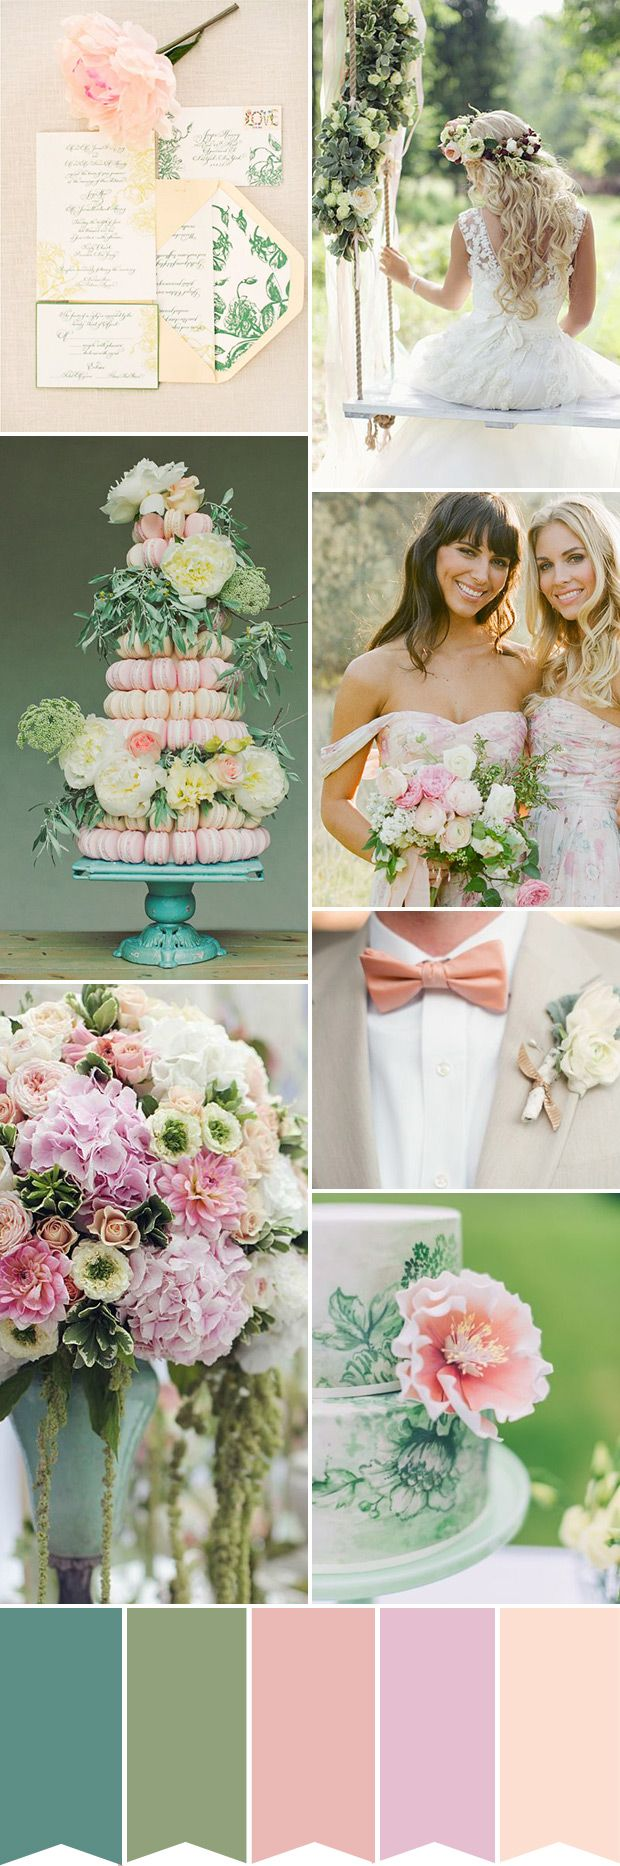 Pink and Green Summer Garden Party Wedding Inspiration | www.onefabday.com